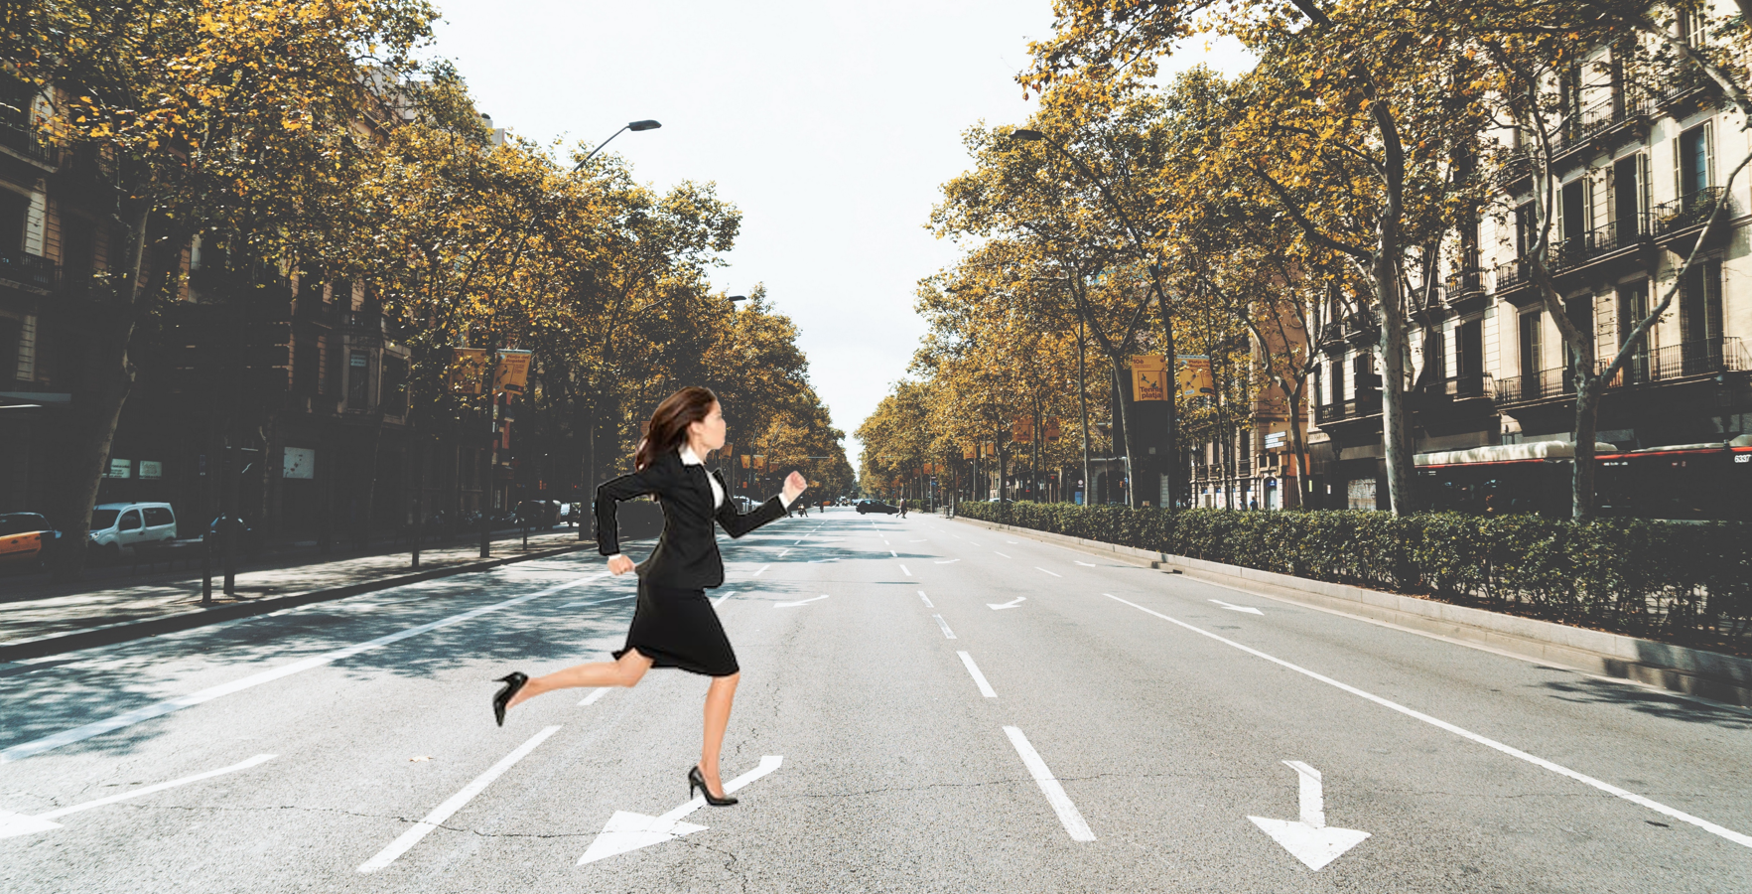 Woman Running Across Road.png